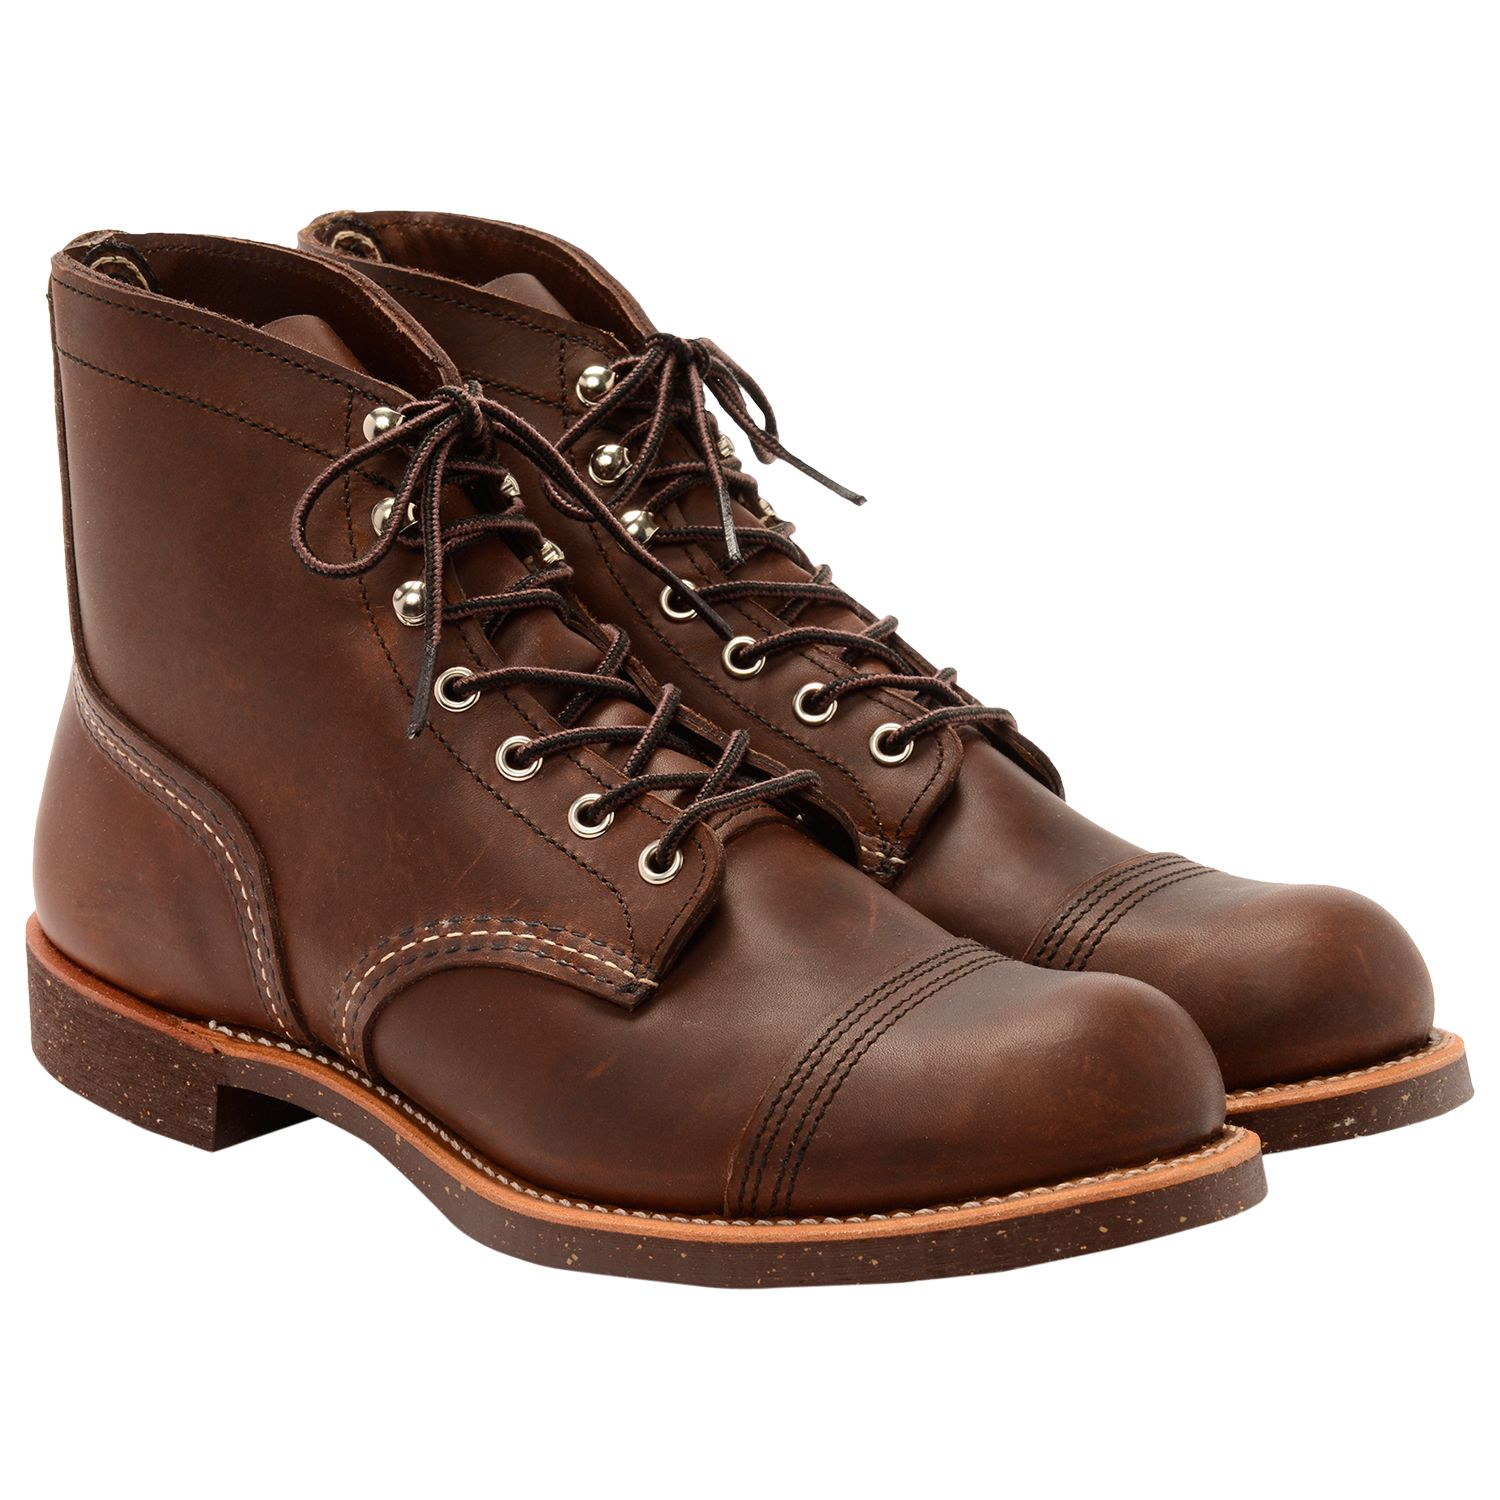 Red Wing Red Wing 8111 Iron Ranger Boots, Amber Harness